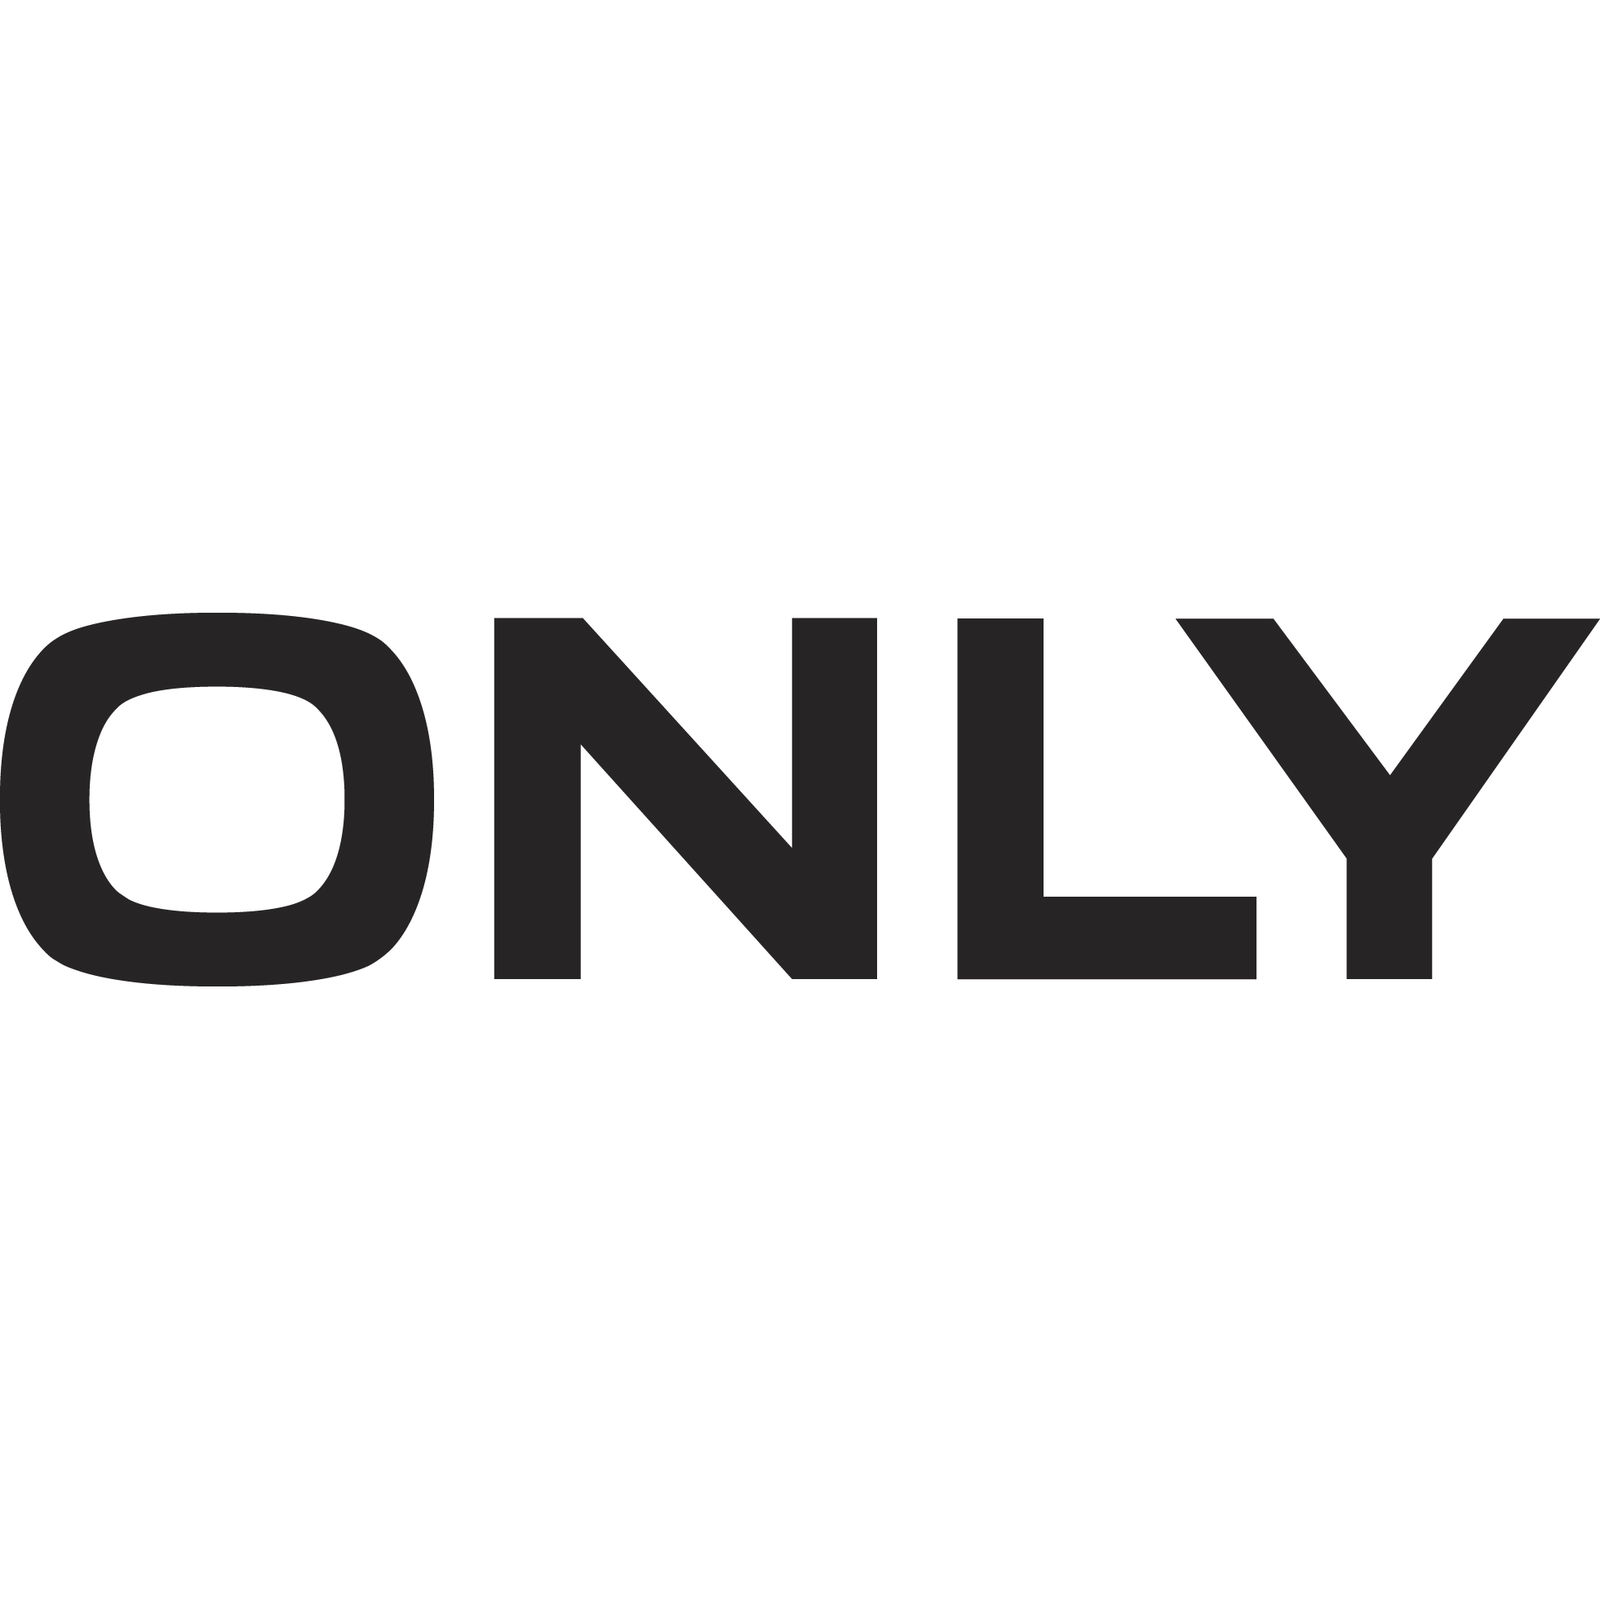 ONLY (Image 1)